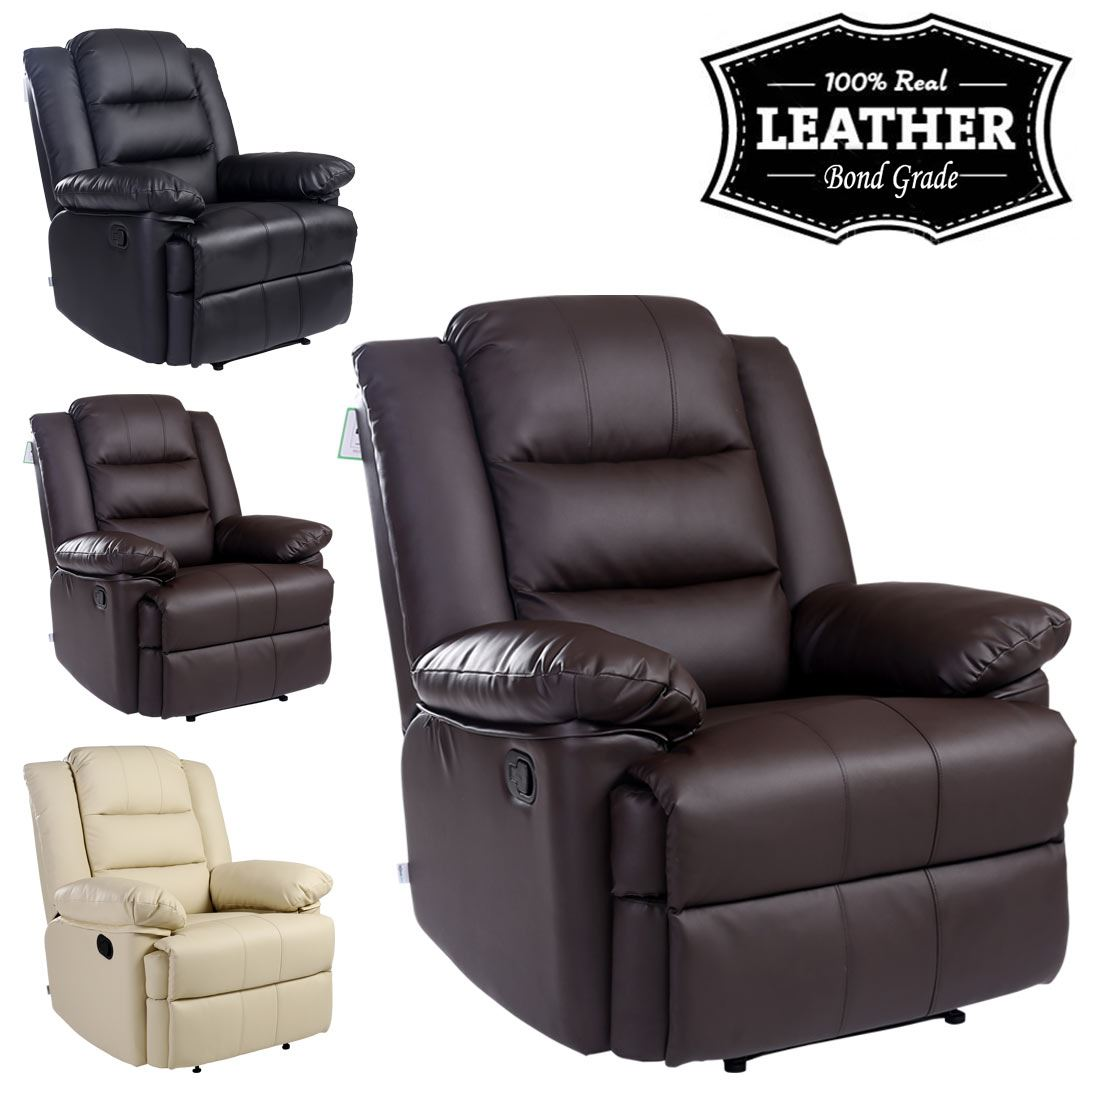 Item specifics  sc 1 st  eBay & LOXLEY LEATHER RECLINER ARMCHAIR SOFA HOME LOUNGE CHAIR RECLINING ... islam-shia.org